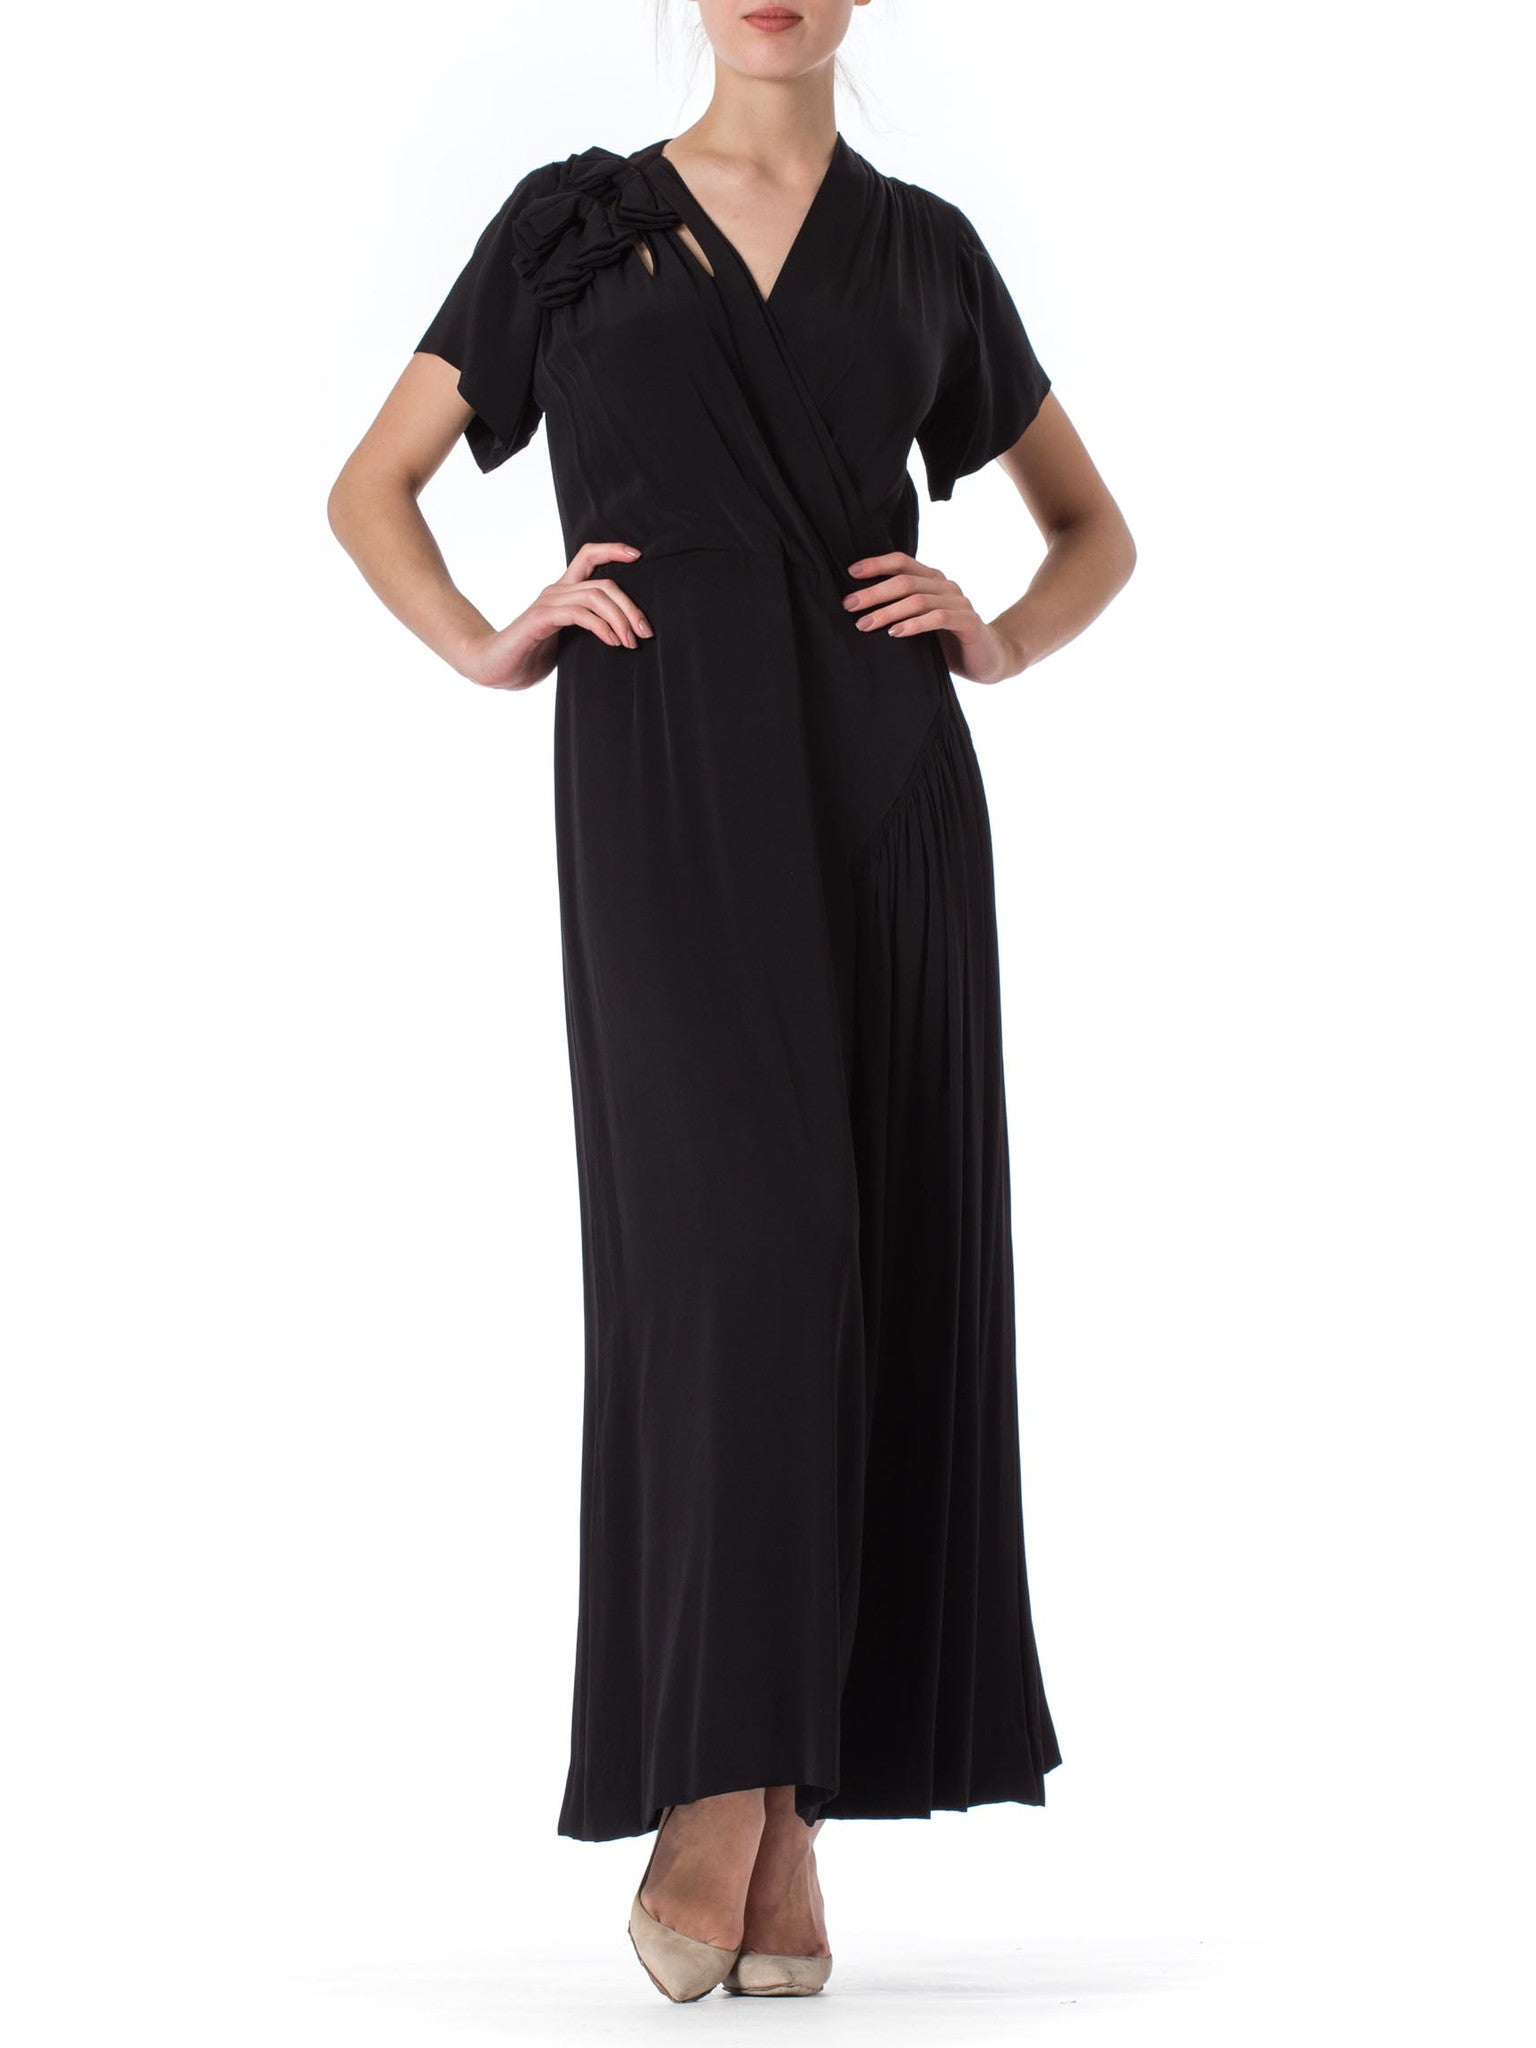 1930s Black Structured Bow Detail Short Sleeve Dress